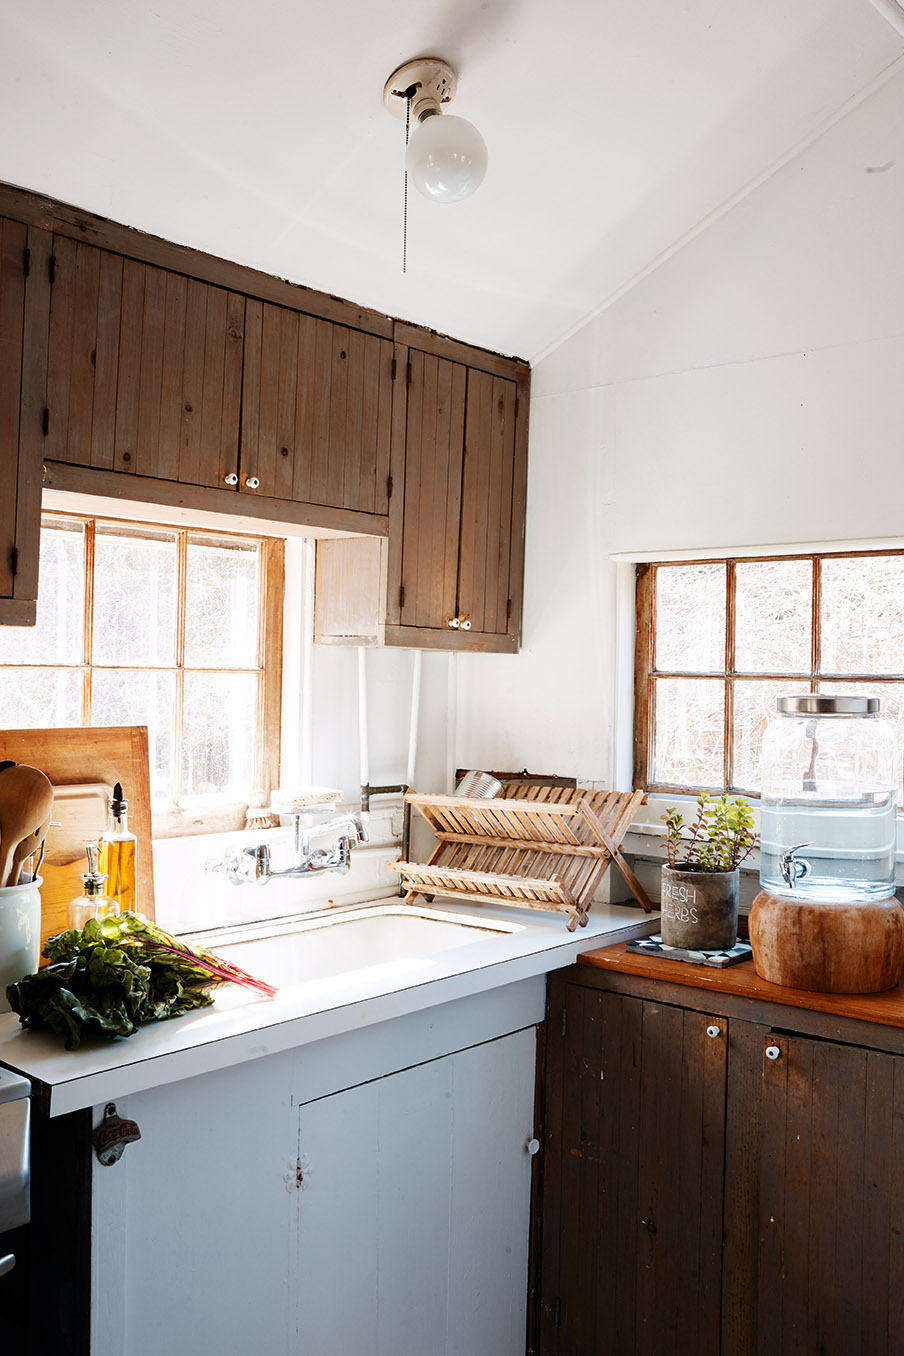 The kitchen, humble and practical, was left untouched.